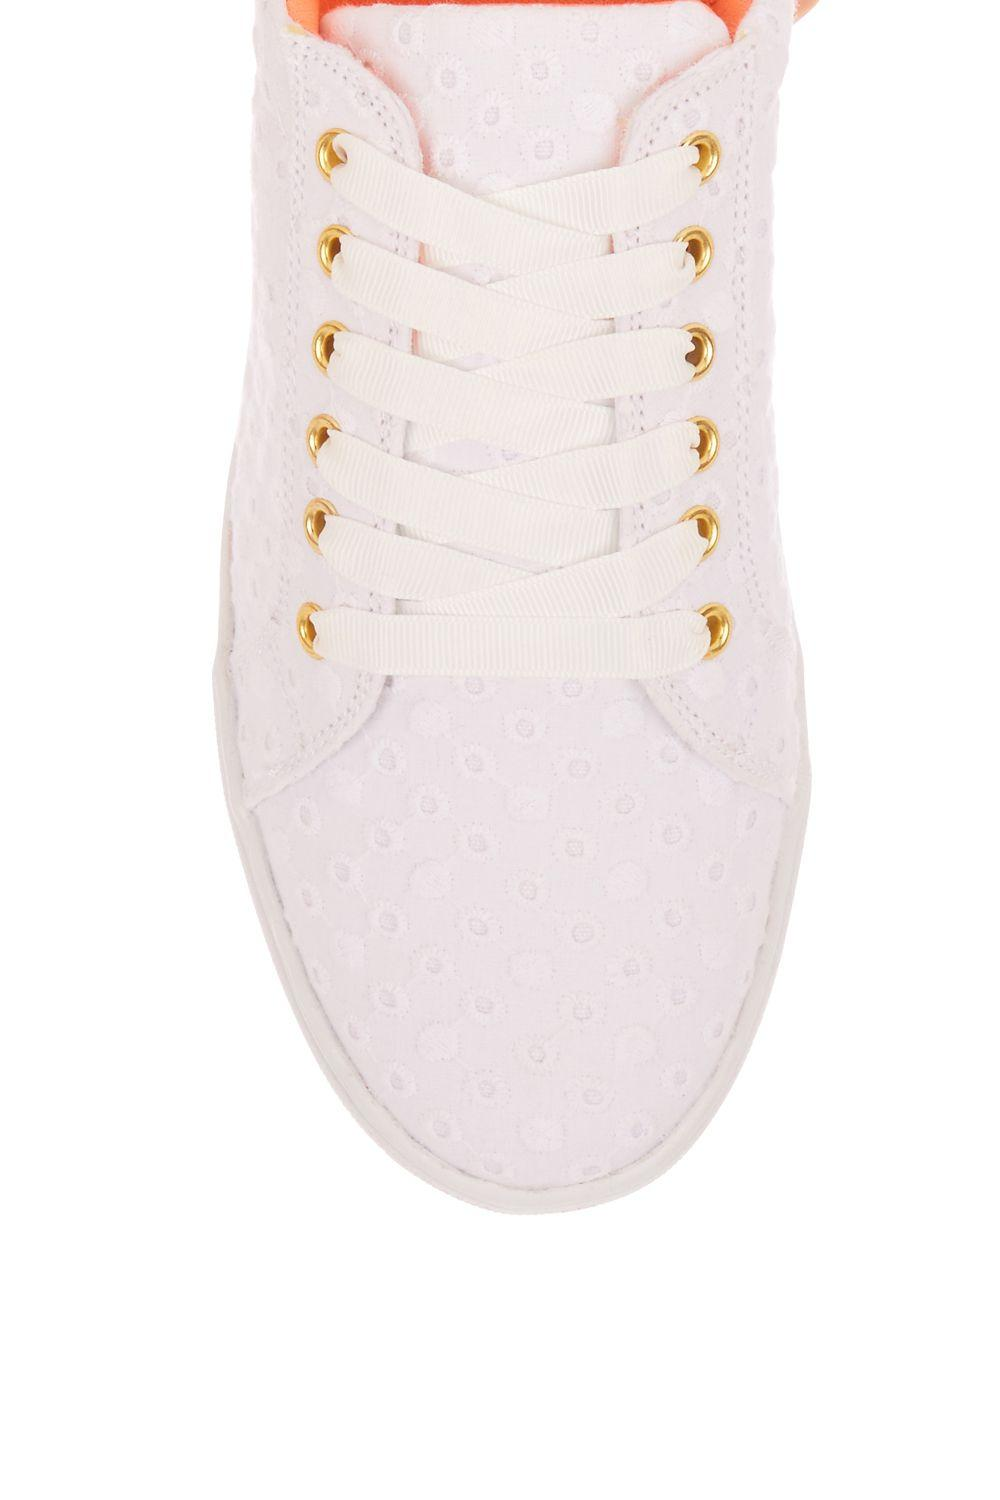 Oasis Elsa Embroidered Spot Trainer in White